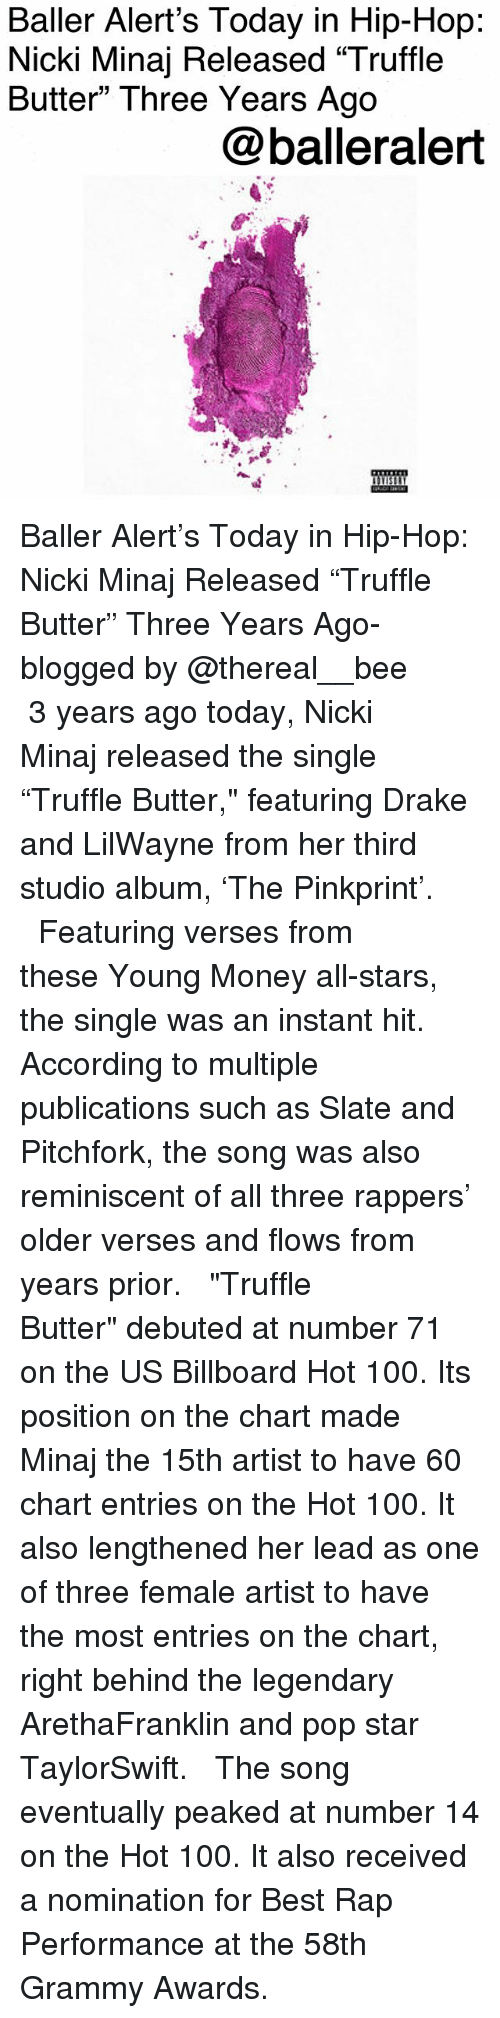 "Grammy Awards: Baller Alert's Today in Hip-Hop  Nicki Minaj Released ""Truffle  Butter"" Three Years Ago  @balleralert Baller Alert's Today in Hip-Hop: Nicki Minaj Released ""Truffle Butter"" Three Years Ago-blogged by @thereal__bee ⠀⠀⠀⠀⠀⠀⠀ ⠀⠀⠀⠀ 3 years ago today, Nicki Minaj released the single ""Truffle Butter,"" featuring Drake and LilWayne from her third studio album, 'The Pinkprint'. ⠀⠀⠀⠀⠀⠀⠀ ⠀⠀⠀⠀ Featuring verses from these Young Money all-stars, the single was an instant hit. According to multiple publications such as Slate and Pitchfork, the song was also reminiscent of all three rappers' older verses and flows from years prior. ⠀⠀⠀⠀⠀⠀⠀ ⠀⠀⠀⠀ ""Truffle Butter"" debuted at number 71 on the US Billboard Hot 100. Its position on the chart made Minaj the 15th artist to have 60 chart entries on the Hot 100. It also lengthened her lead as one of three female artist to have the most entries on the chart, right behind the legendary ArethaFranklin and pop star TaylorSwift. ⠀⠀⠀⠀⠀⠀⠀ ⠀⠀⠀⠀ The song eventually peaked at number 14 on the Hot 100. It also received a nomination for Best Rap Performance at the 58th Grammy Awards."